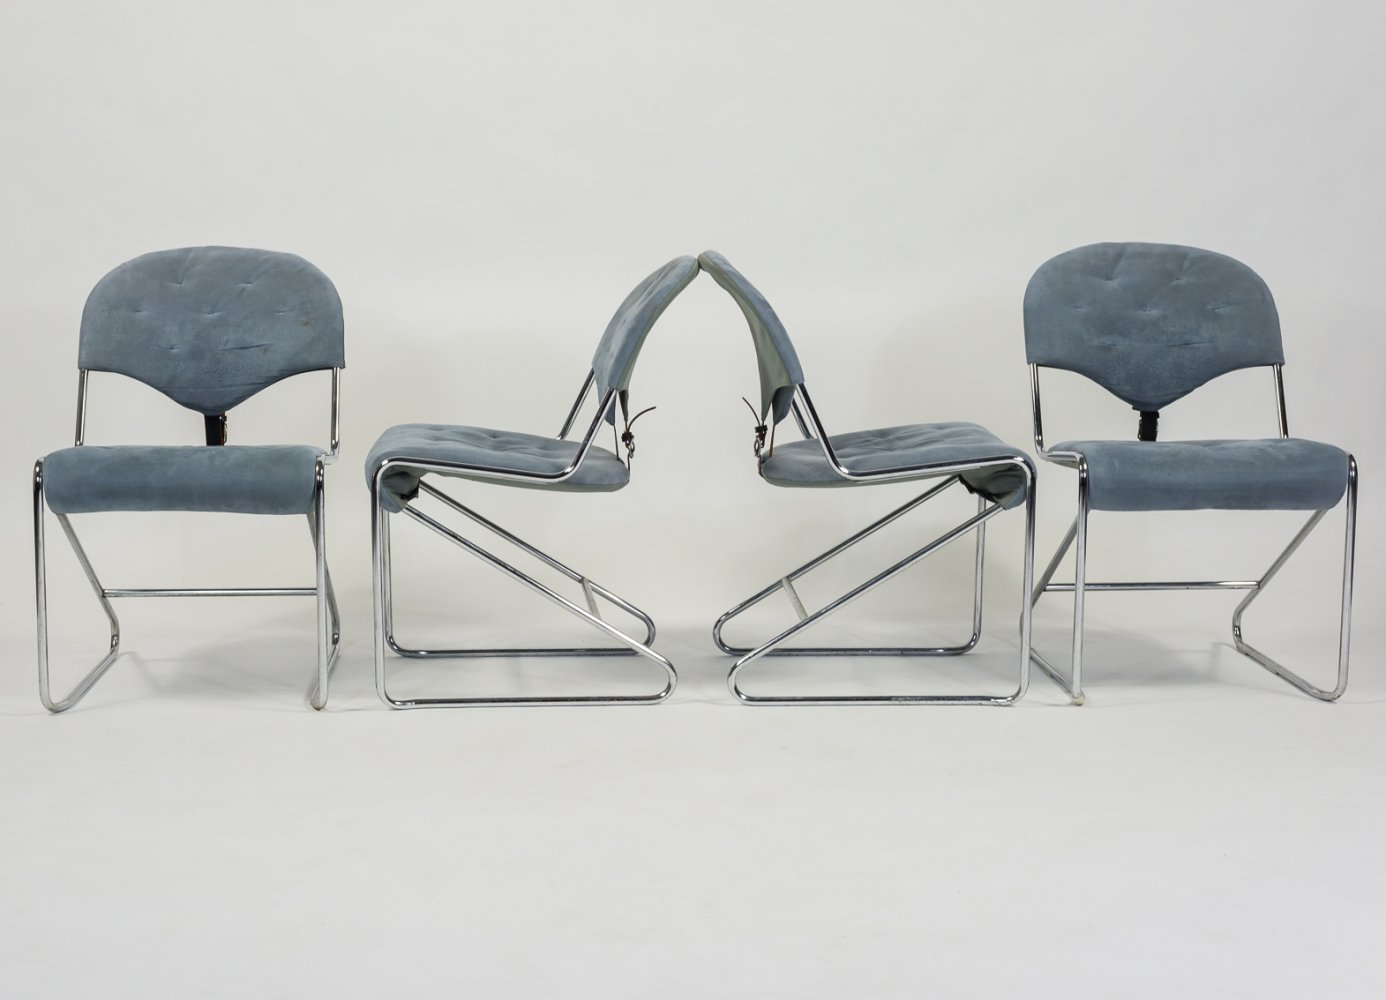 Set of 4 Sam Larsson chairs for DUX Sweden, 1970s